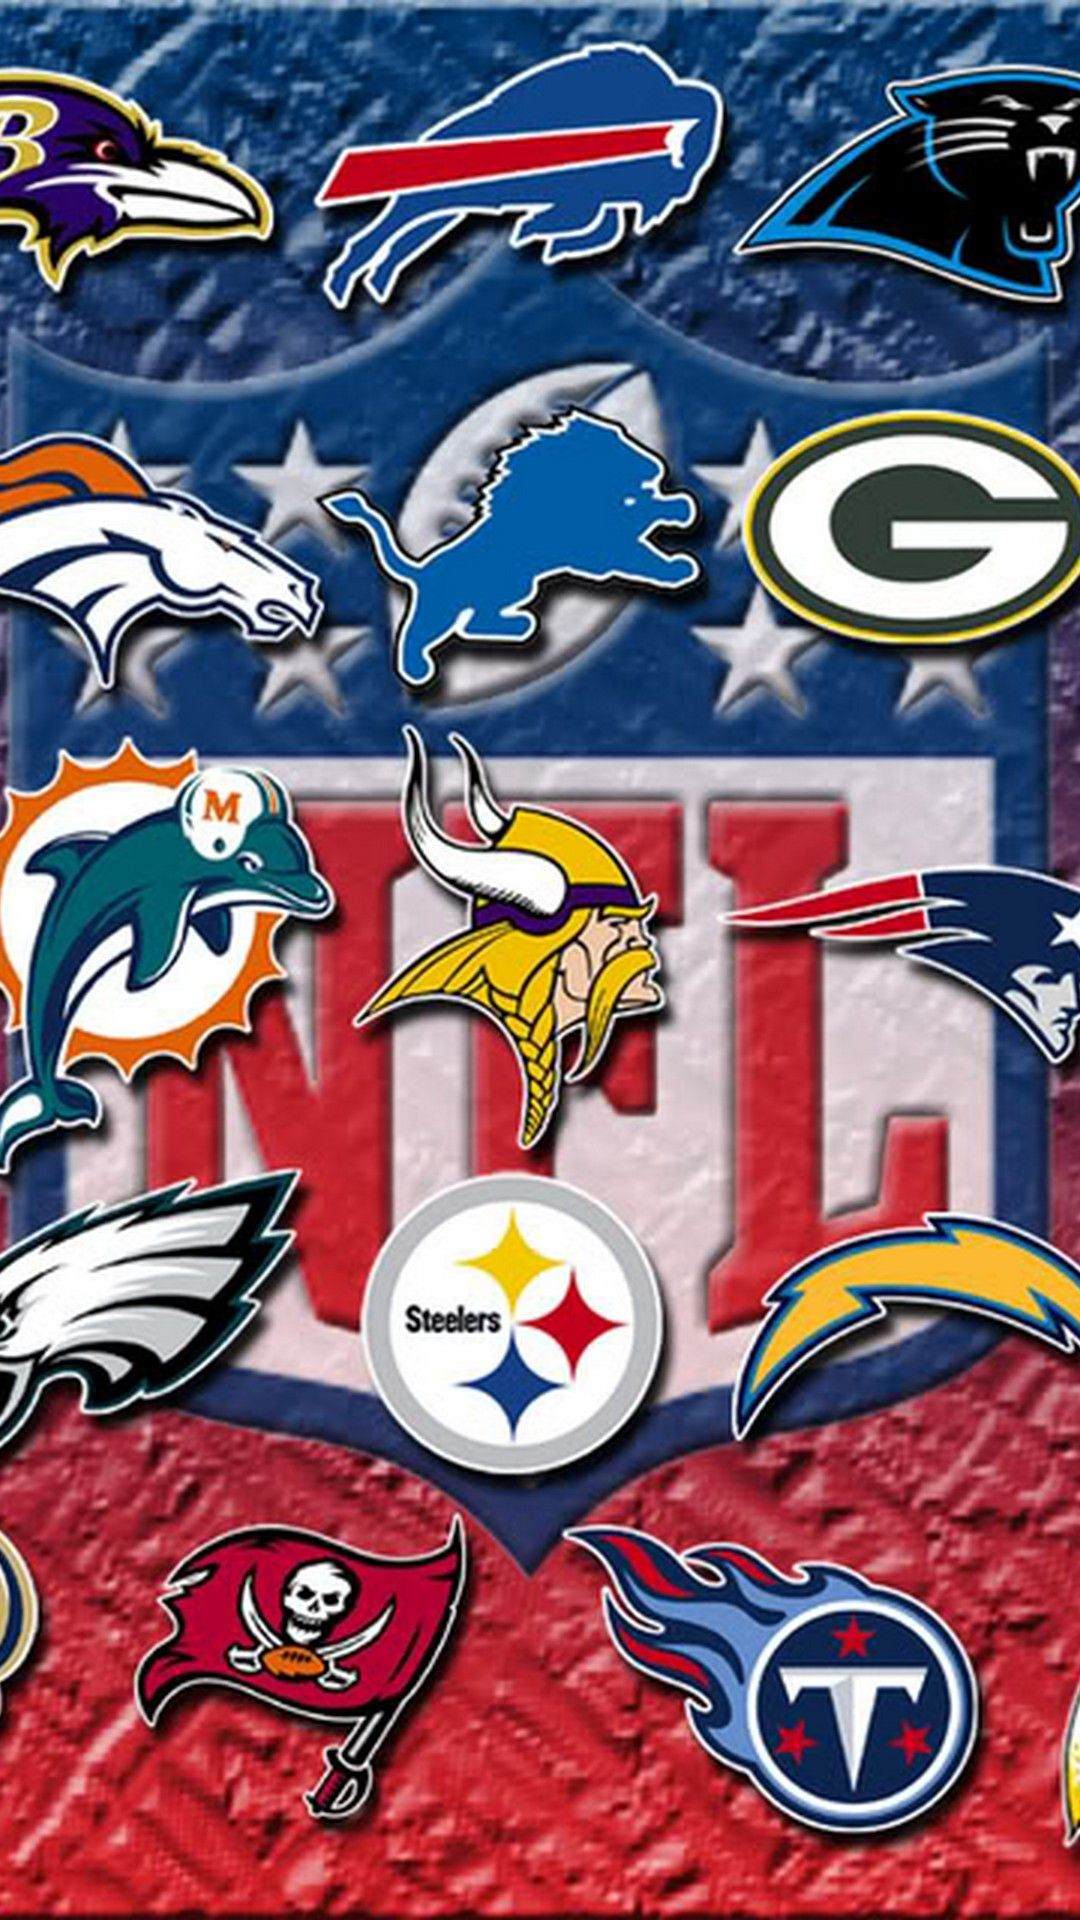 Wallpaper Cool NFL iPhone Football wallpaper, Nfl, Nfl logo